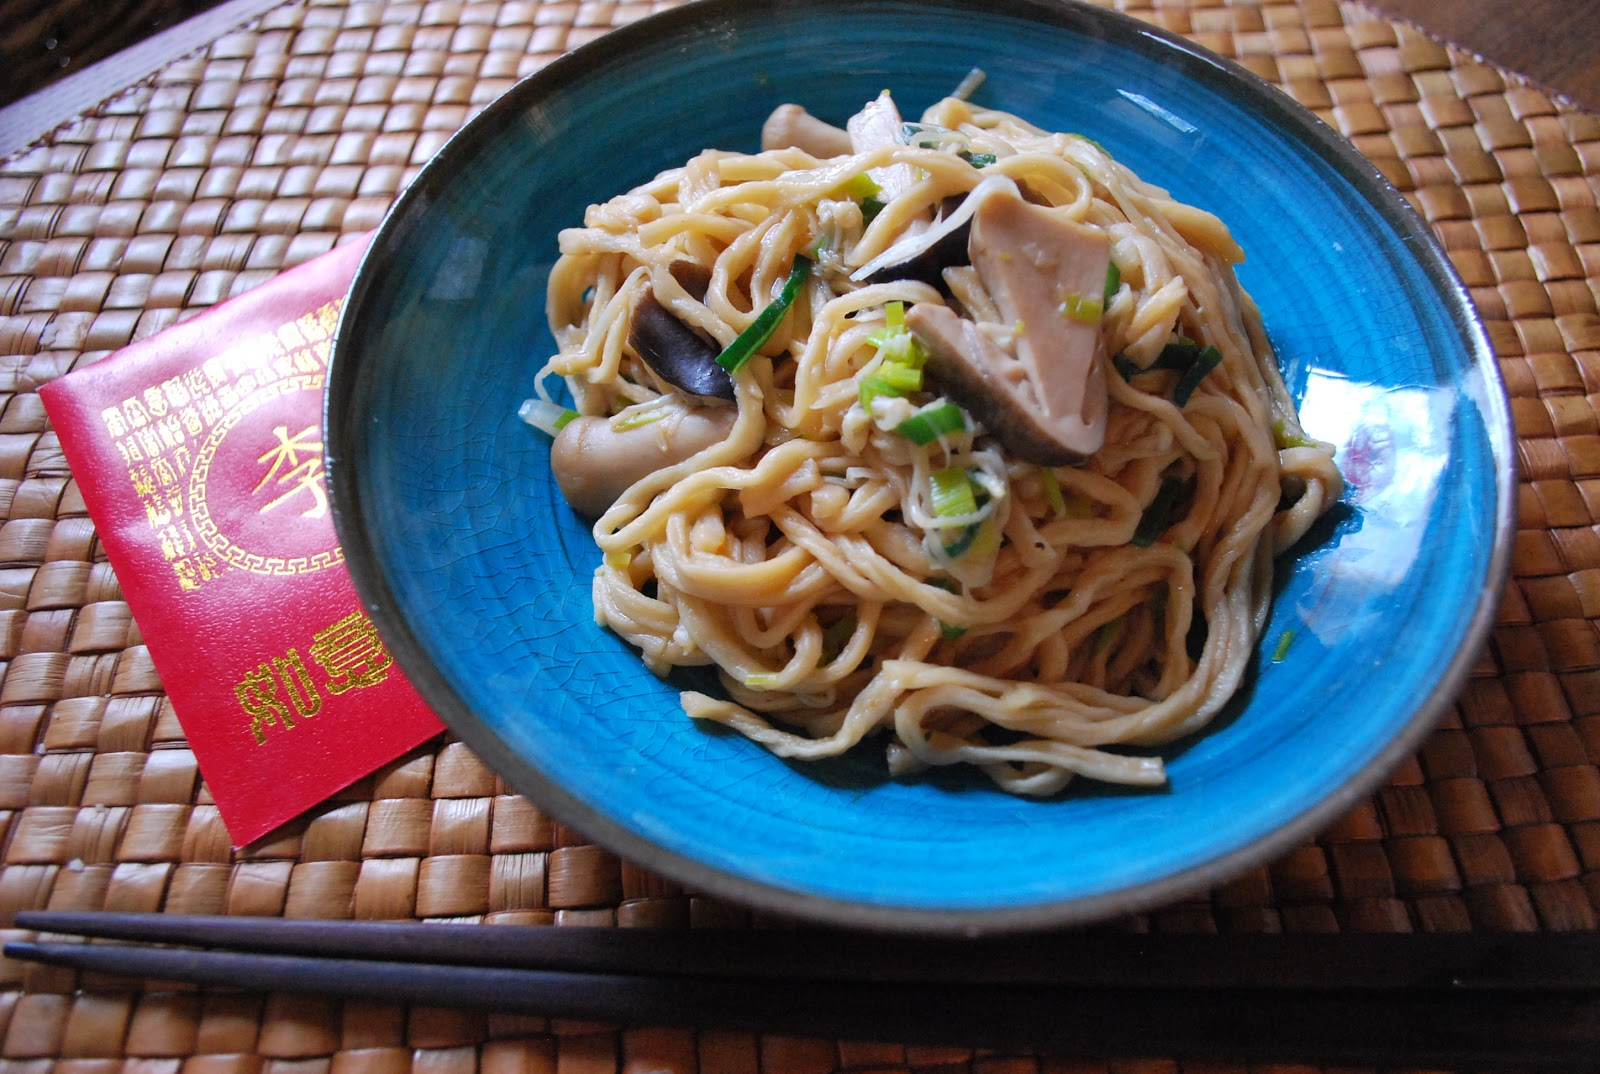 Kulia Cooks Chinese New Year Time For Some Braised Vegetarian Yi Mein Chinese Longevity Noodles With Mushrooms And Leek